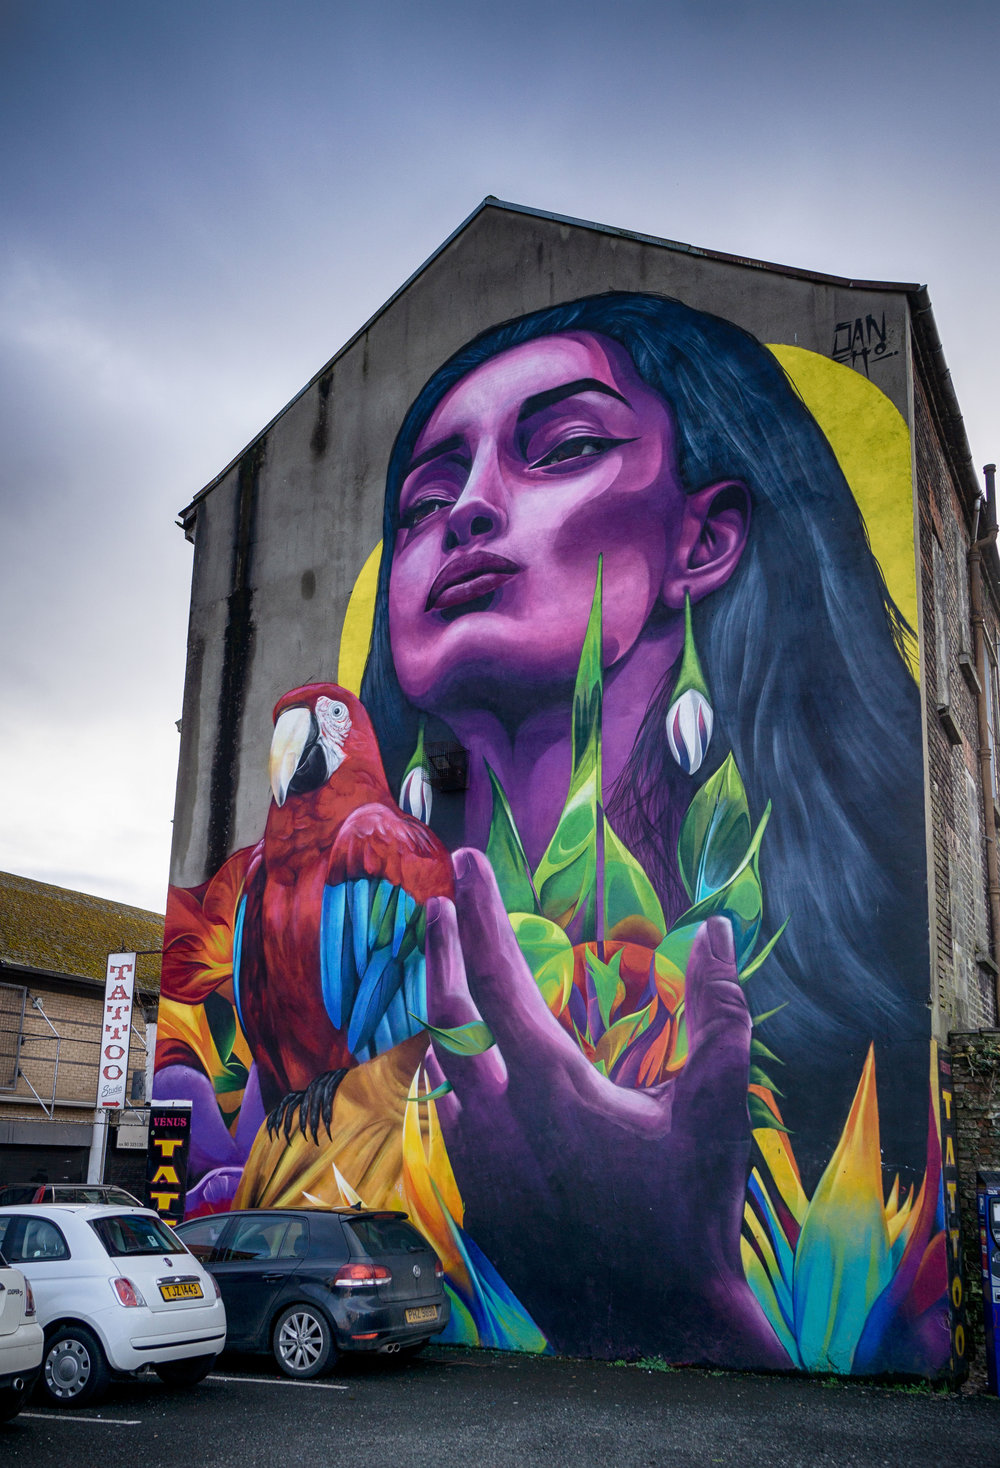 belfast_mural_vickygood_travel_photography9sm.jpg